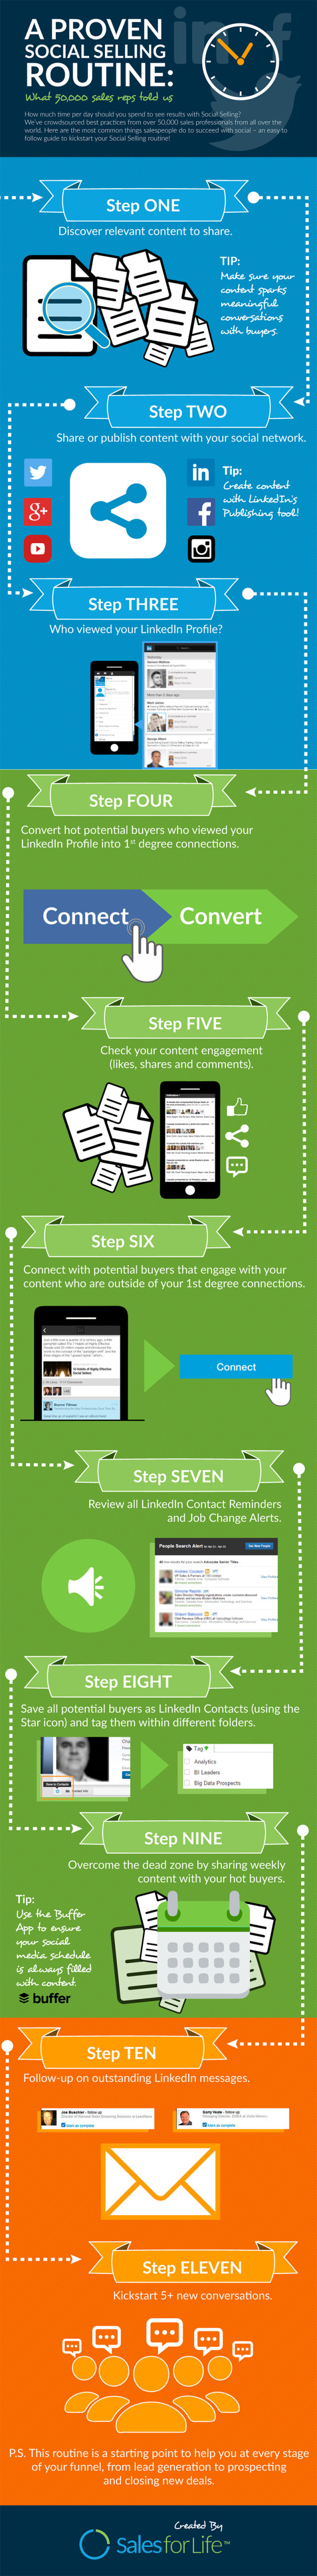 Advanced Social Media: How to Turn Followers into Customers #Infographic